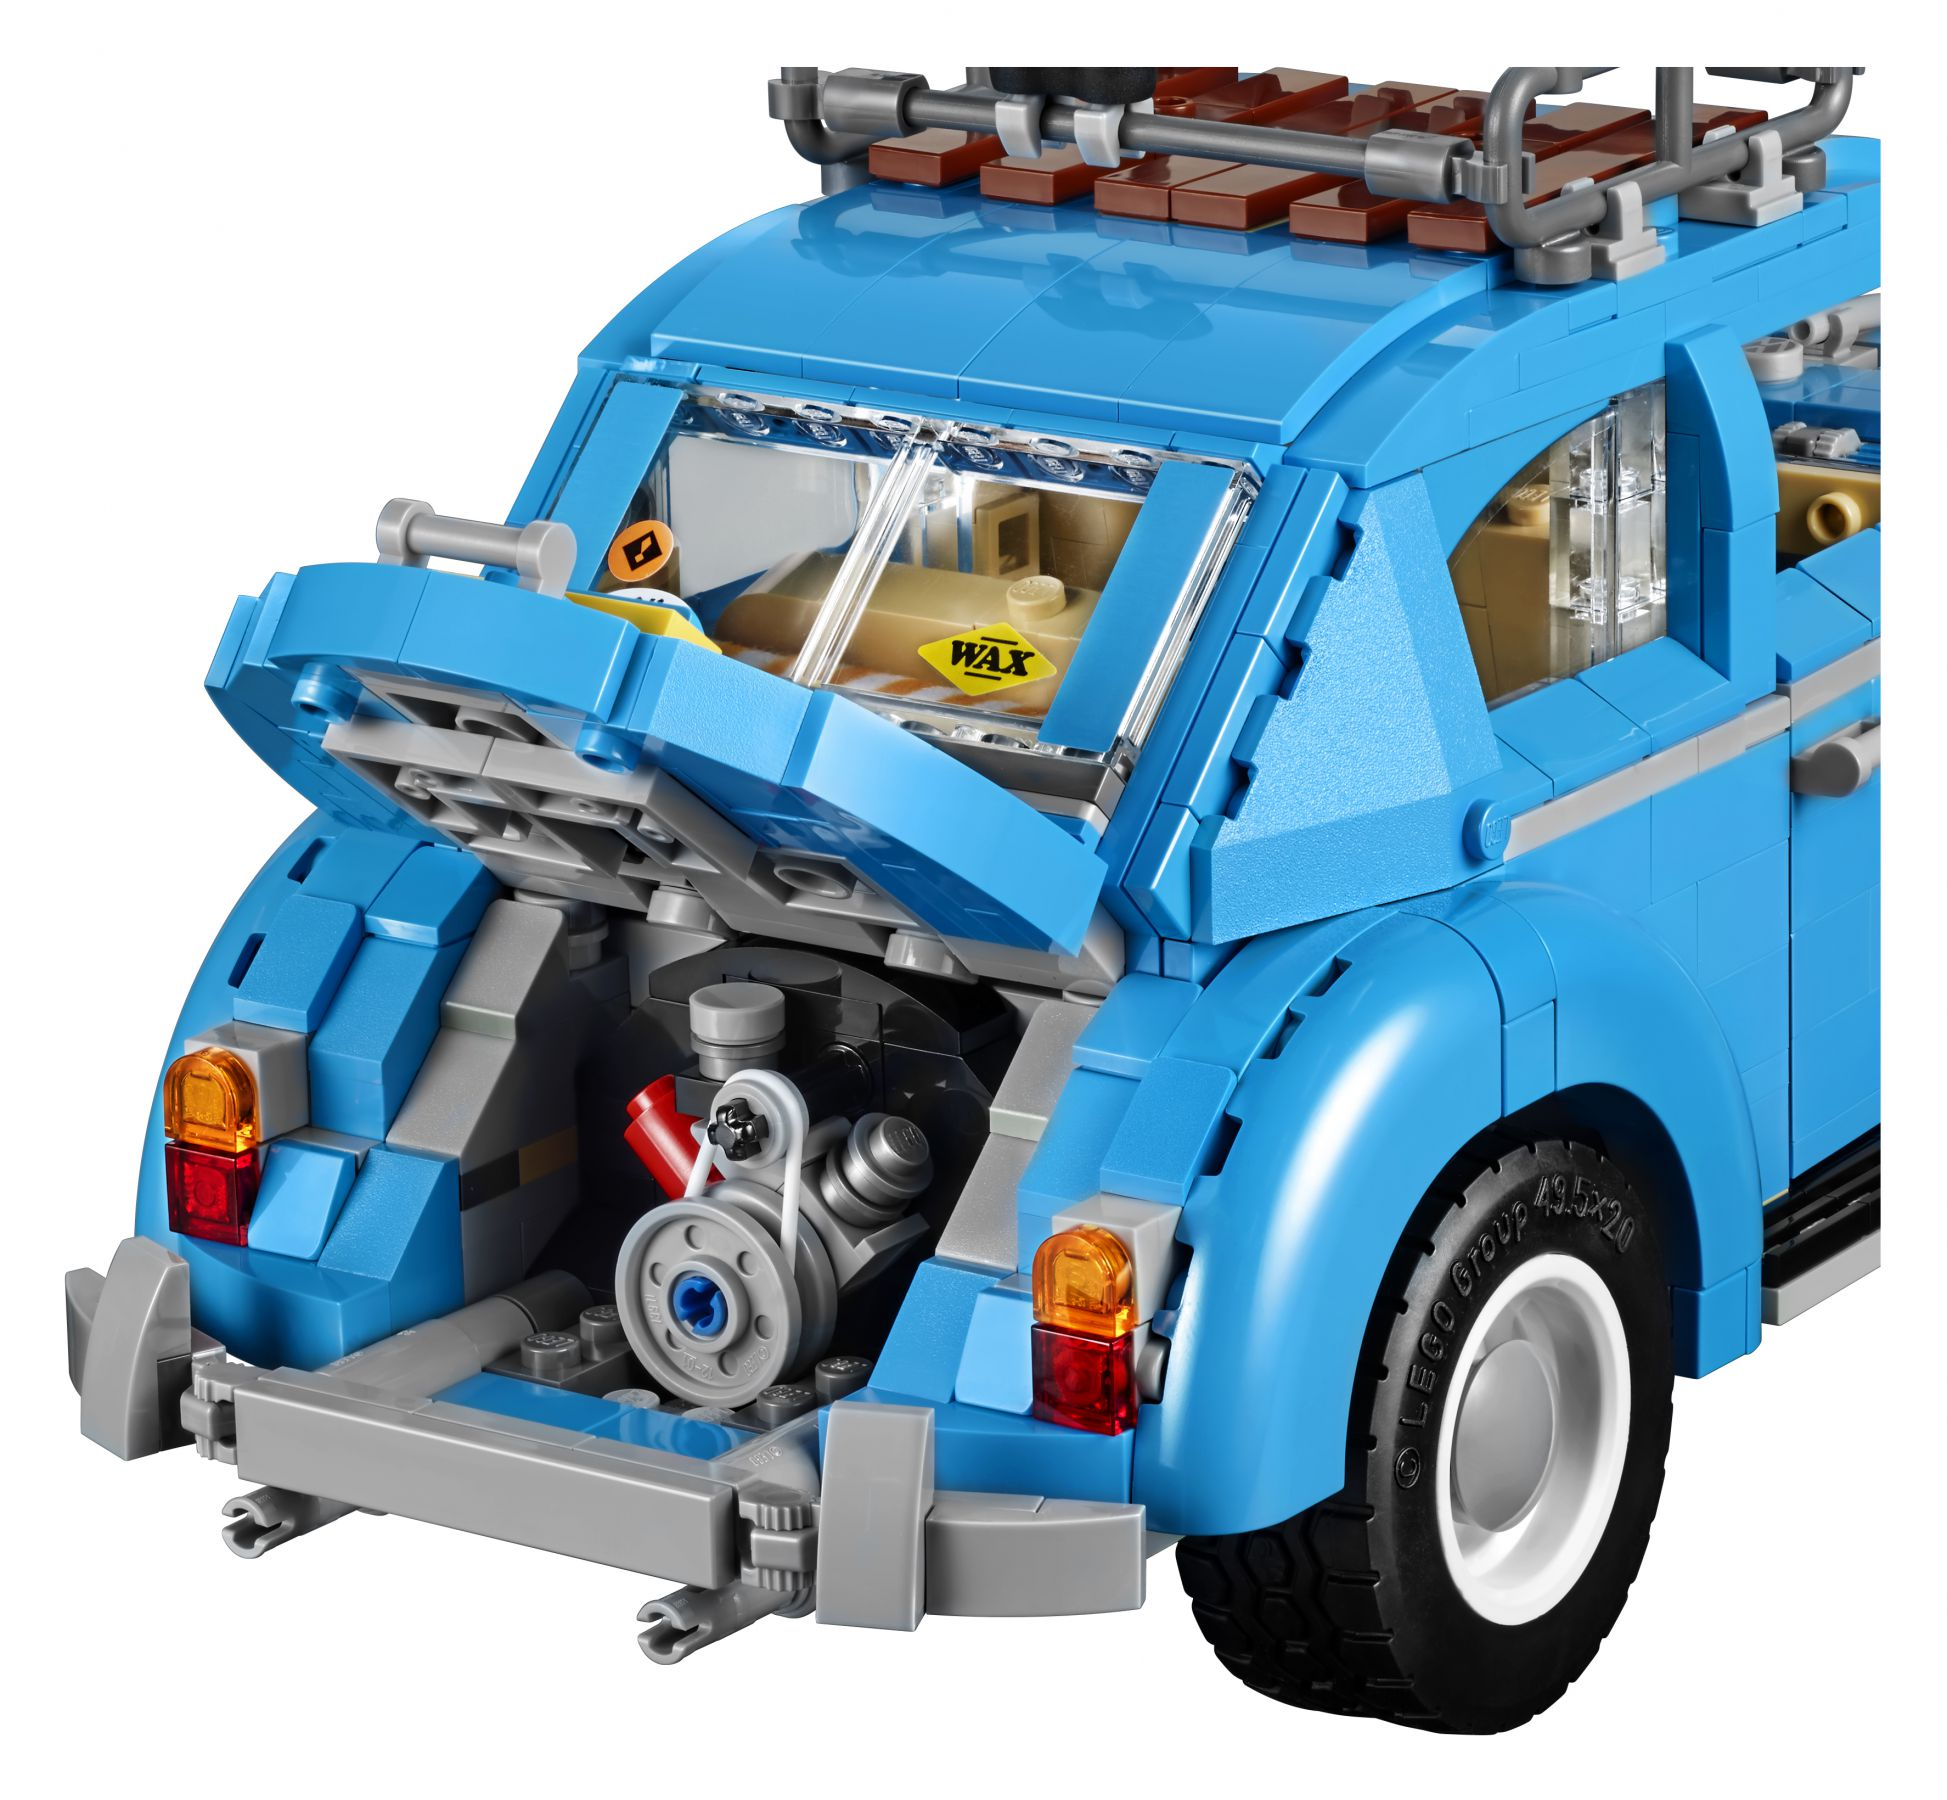 LEGO Advanced Models 10252 VW Käfer LEGO_10252_Volkswagen_Beetle_08.jpg